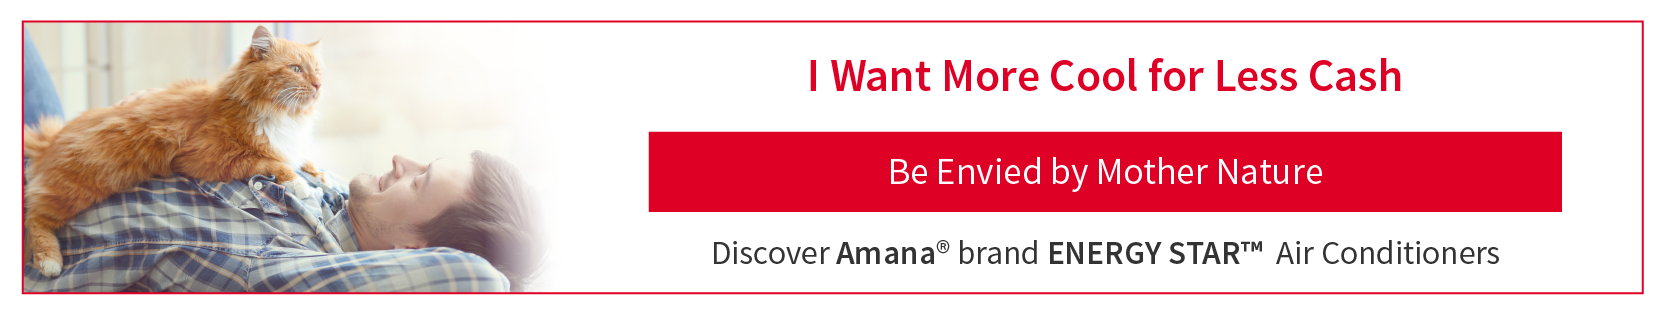 Amana brand Air Conditioners